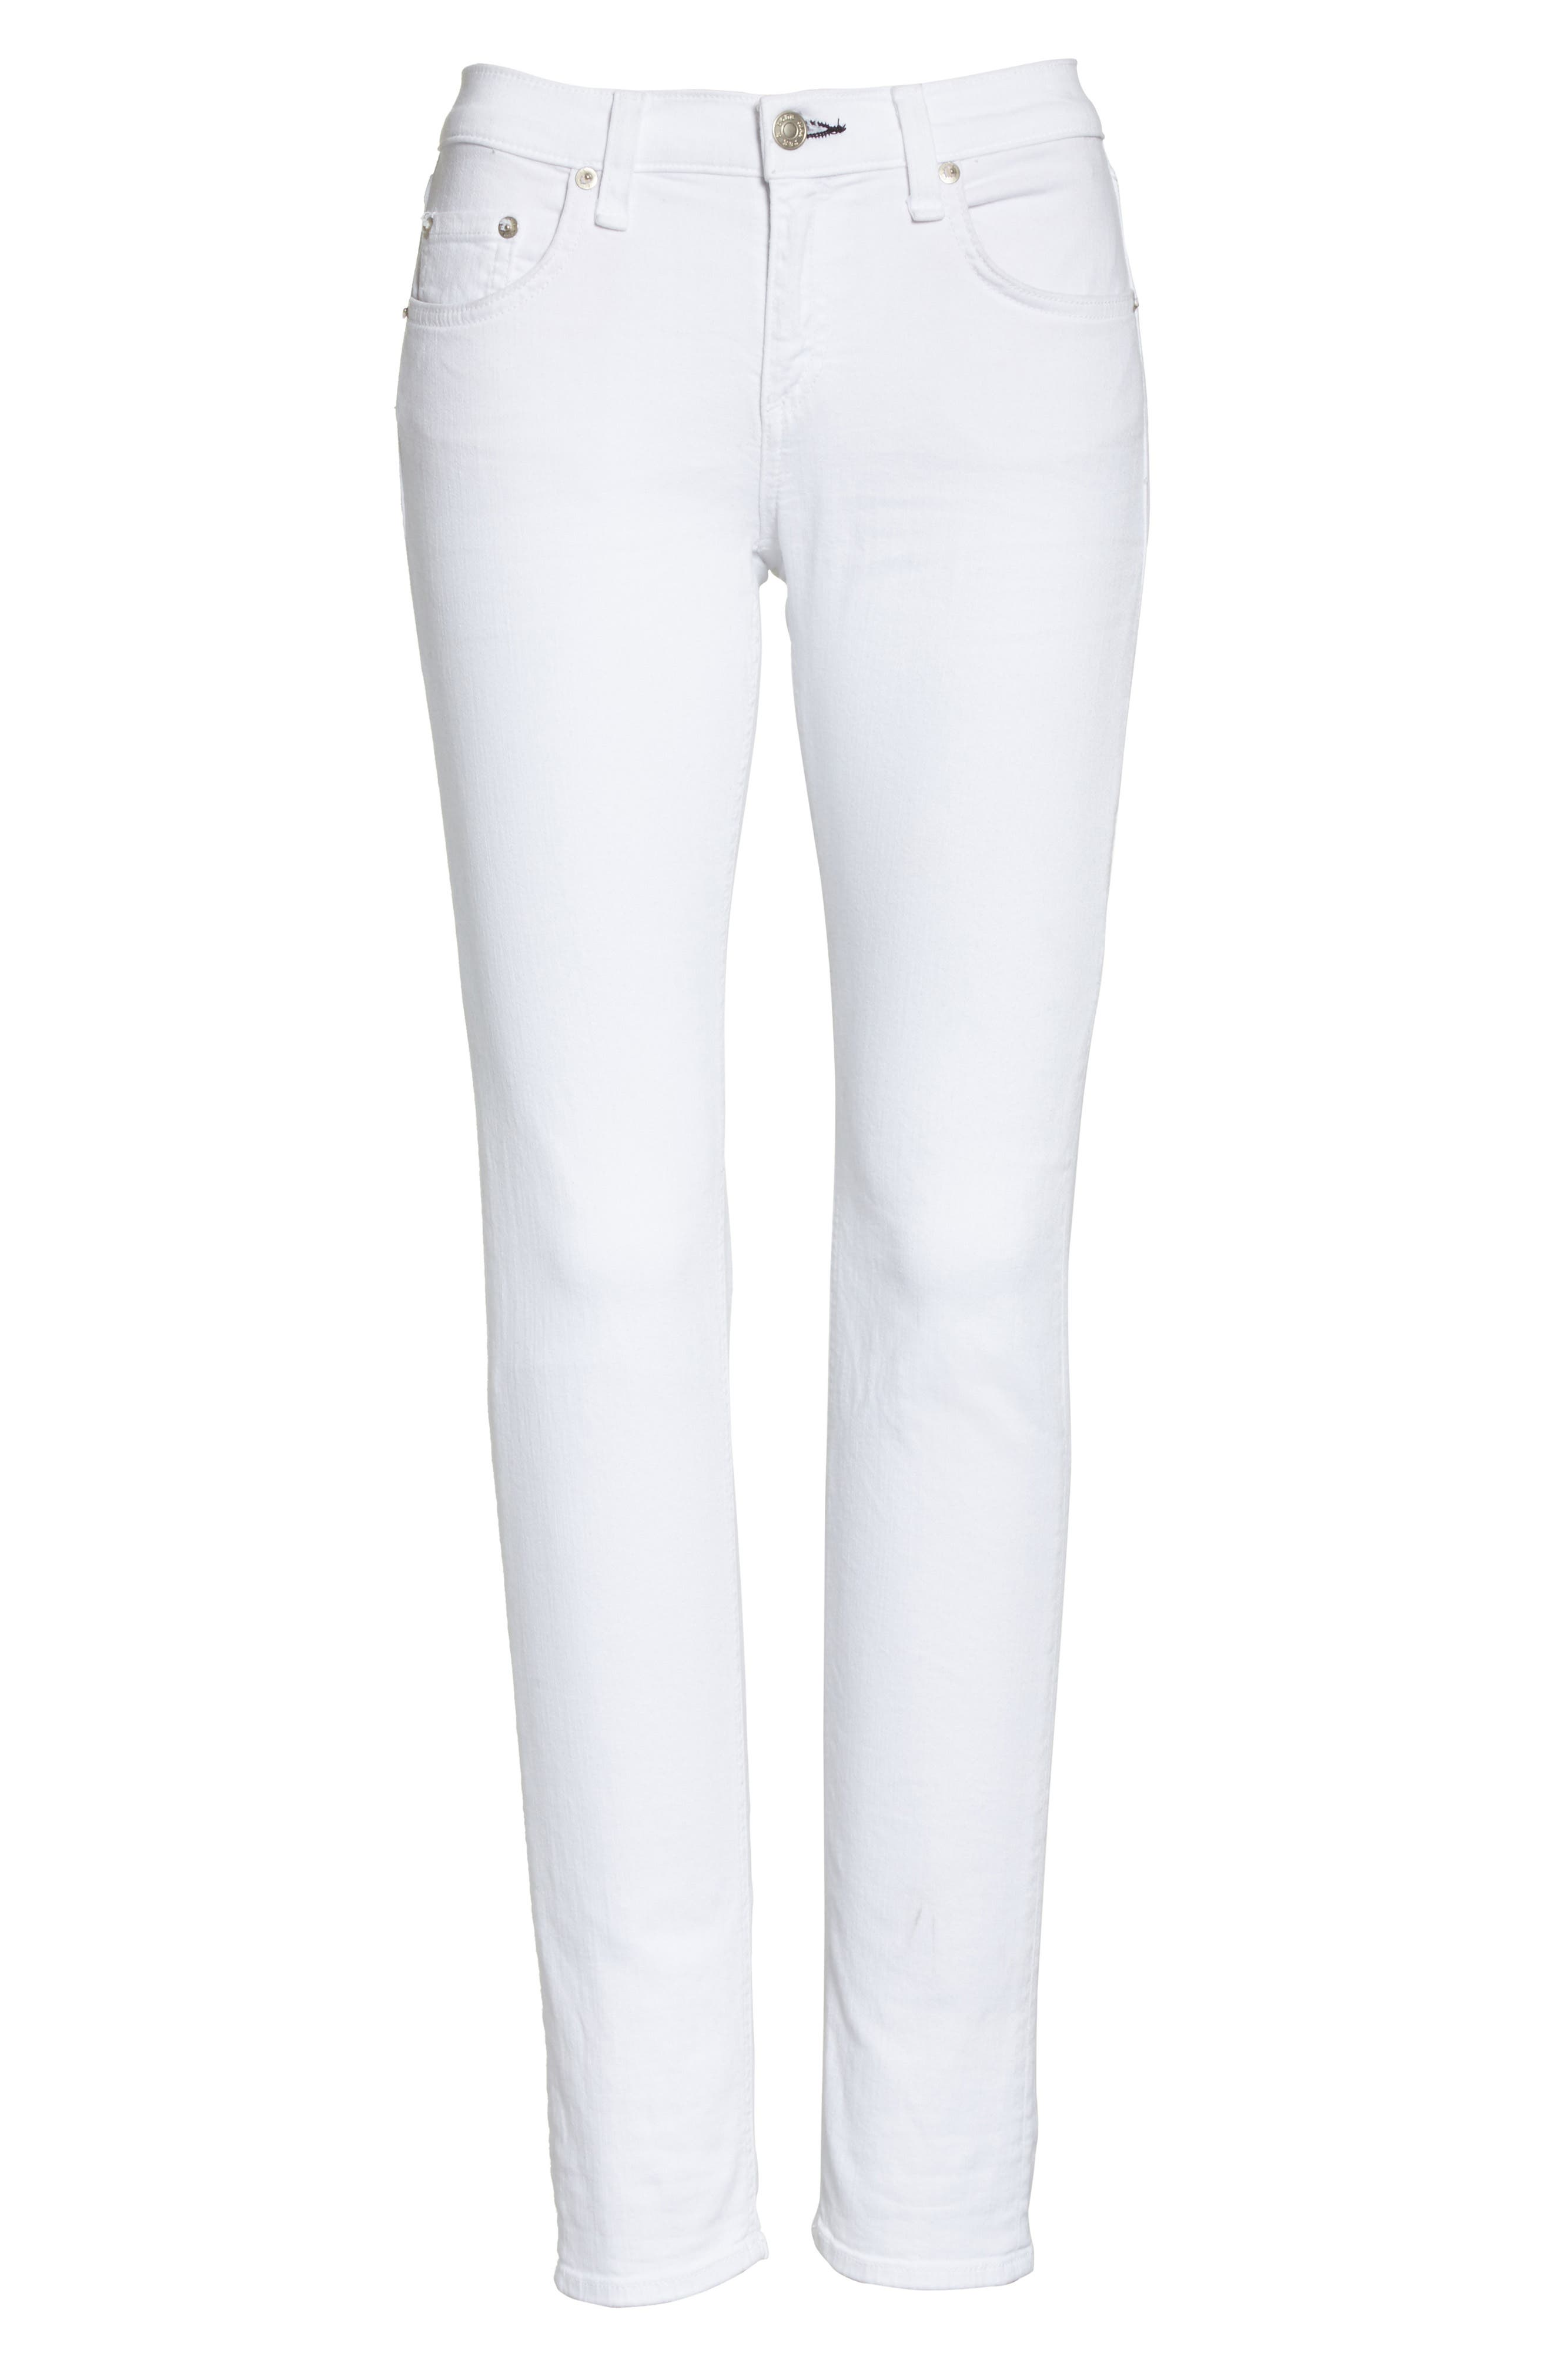 RAG & BONE, 'The Dre' Skinny Jeans, Alternate thumbnail 7, color, BRIGHT WHITE